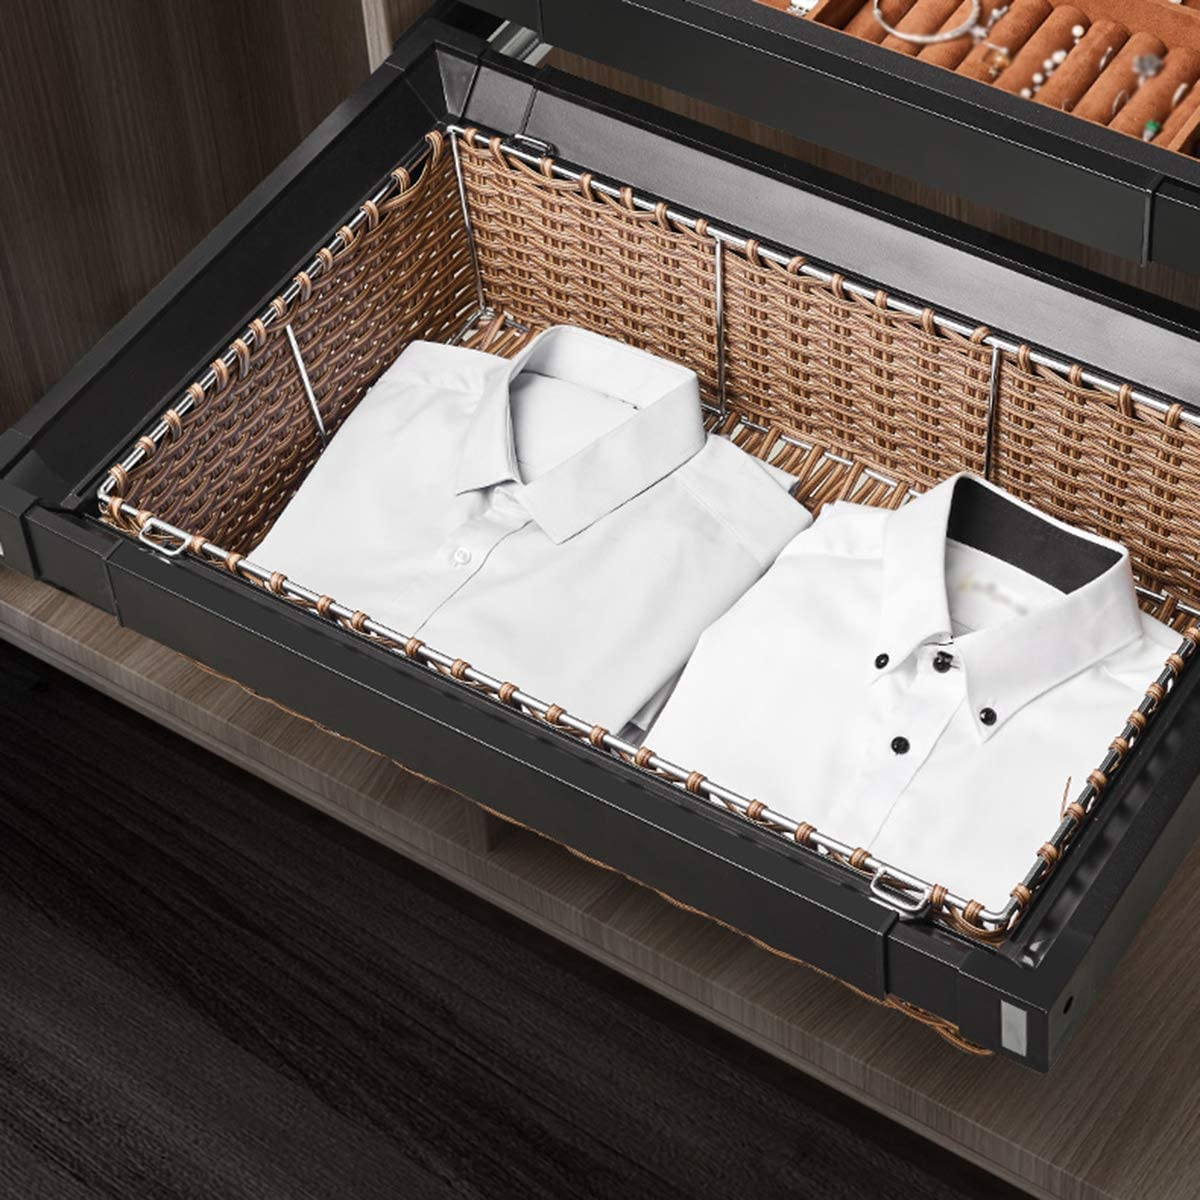 LJ Sliding Cabinet Basket Wardrobe Chicago Mall Baskets Now free shipping Out Dra Pull Storage